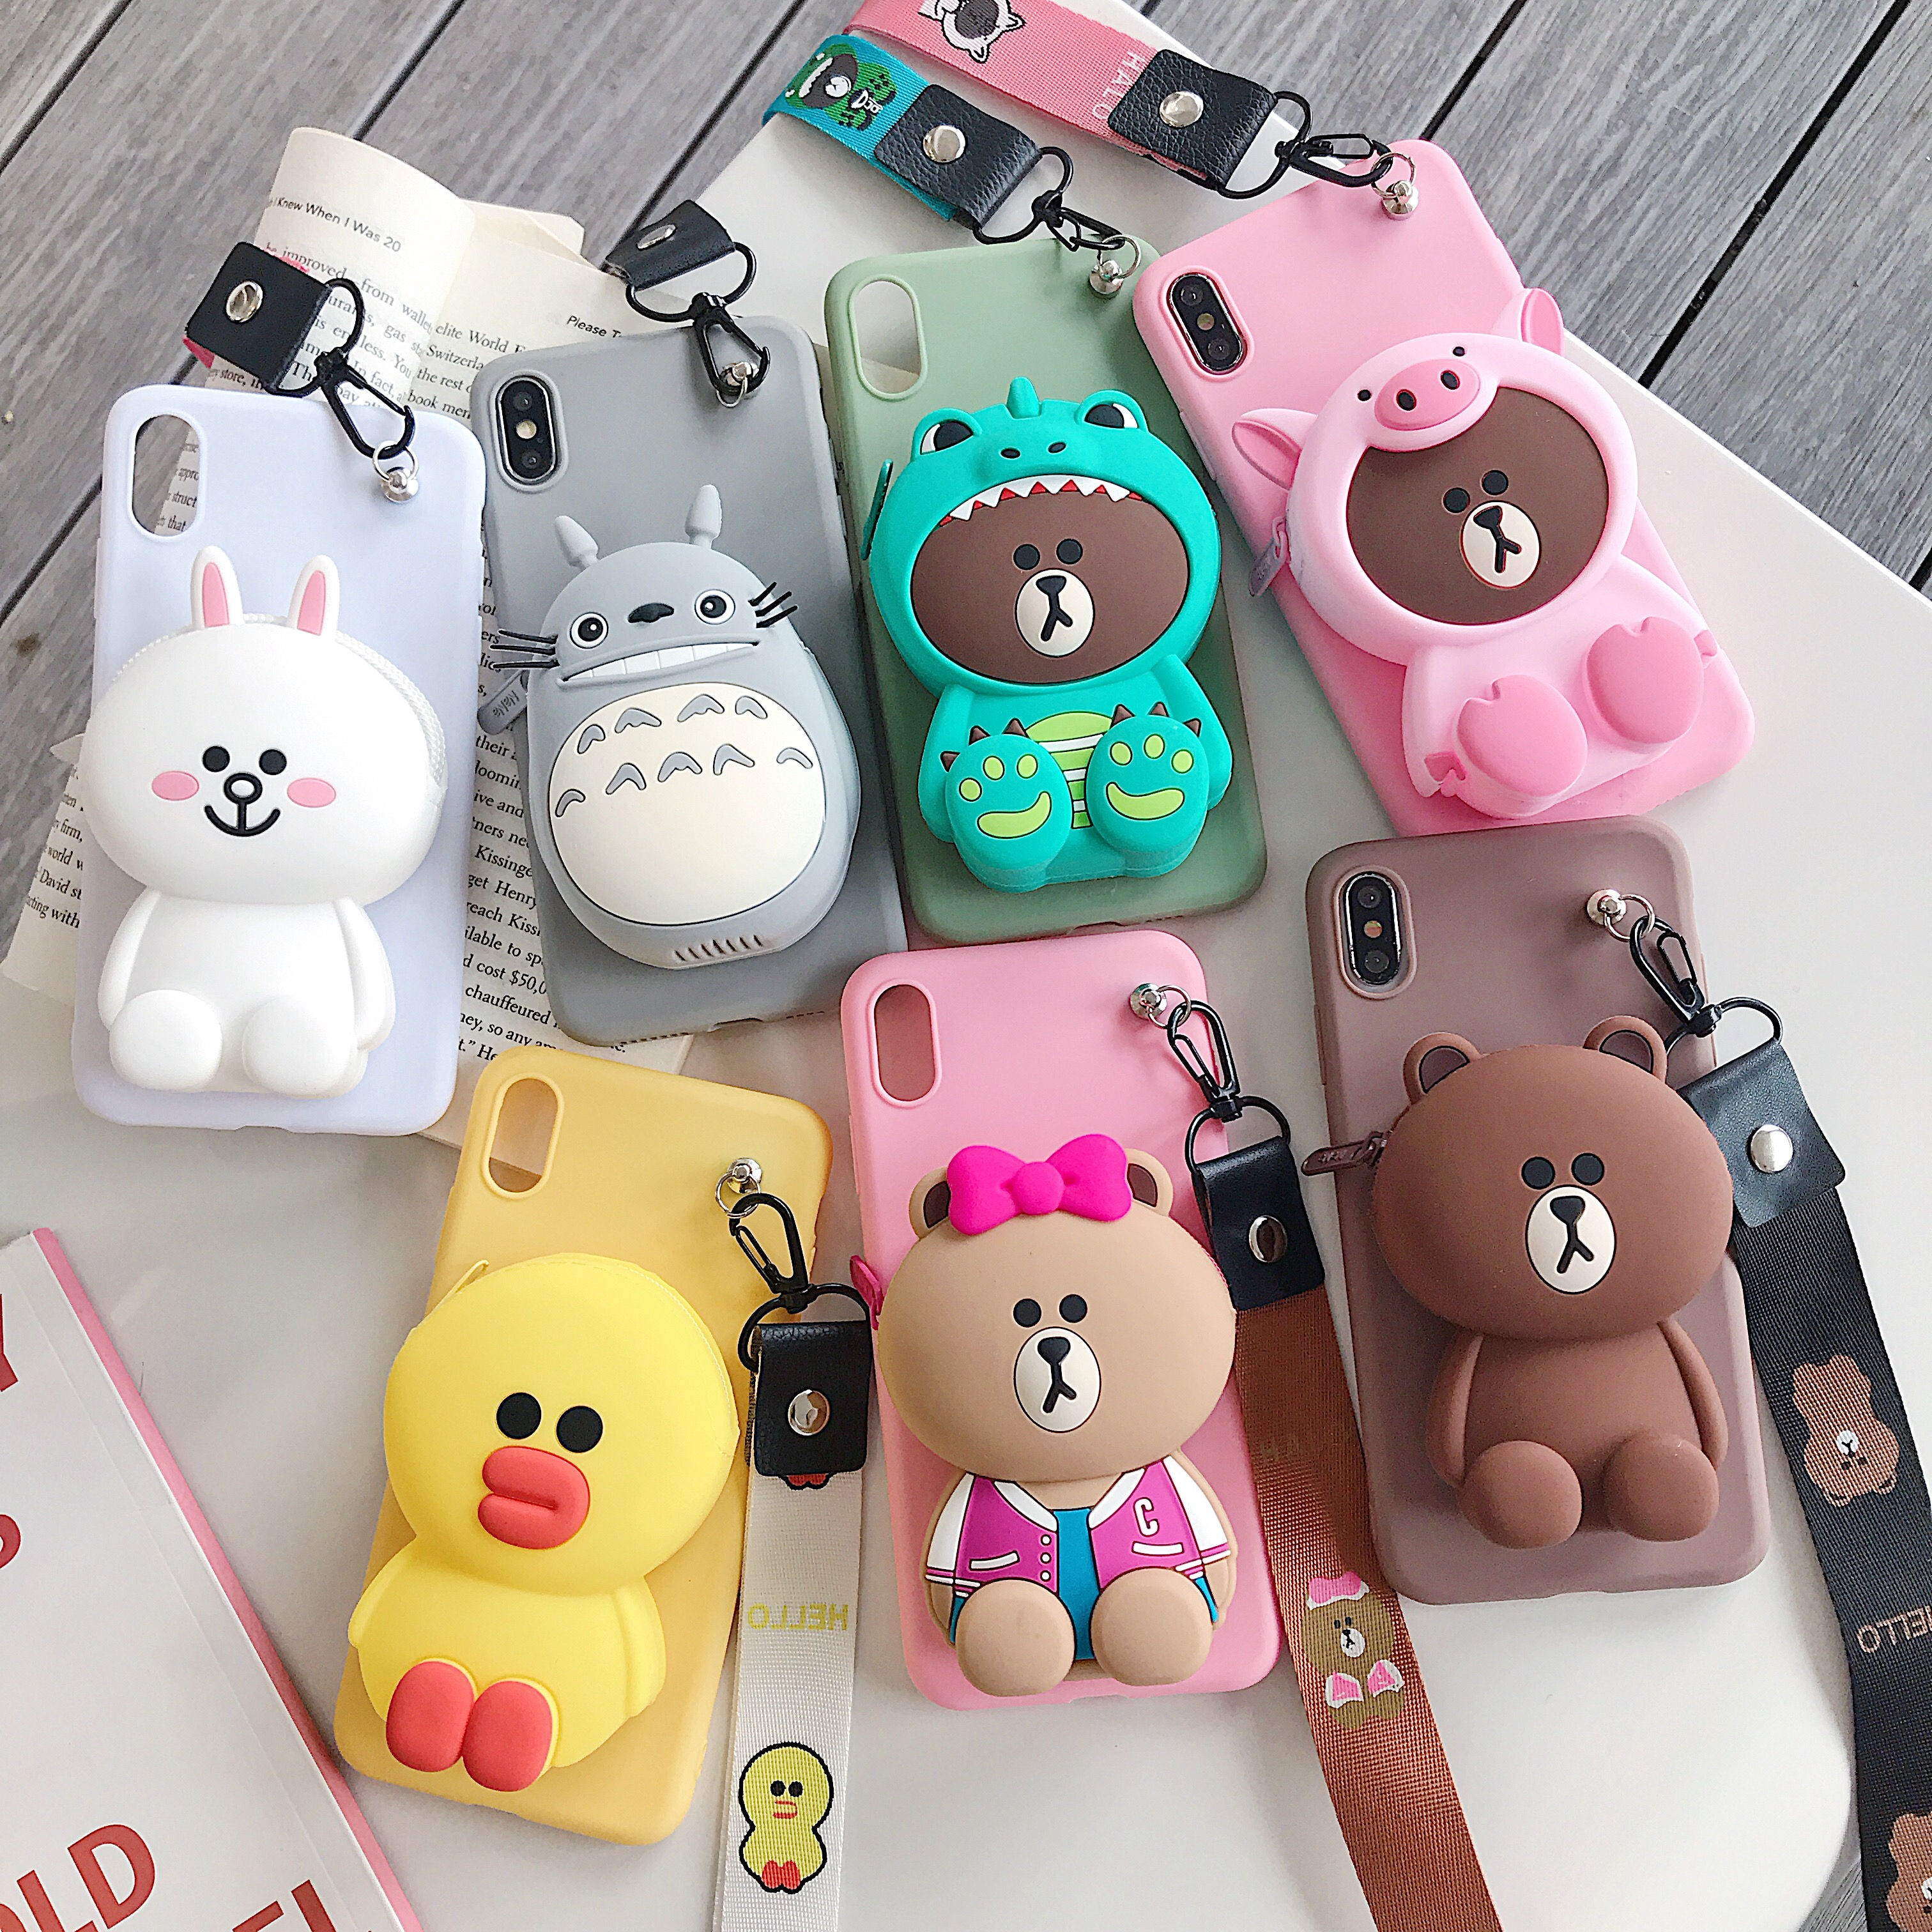 3D Cartoon Brown bear rabbit Wallet Phone Case For oneplus 7 pro oneplus 6t 5t 5 6 Cute Soft Anti-fall Lanyard Strap Cover case